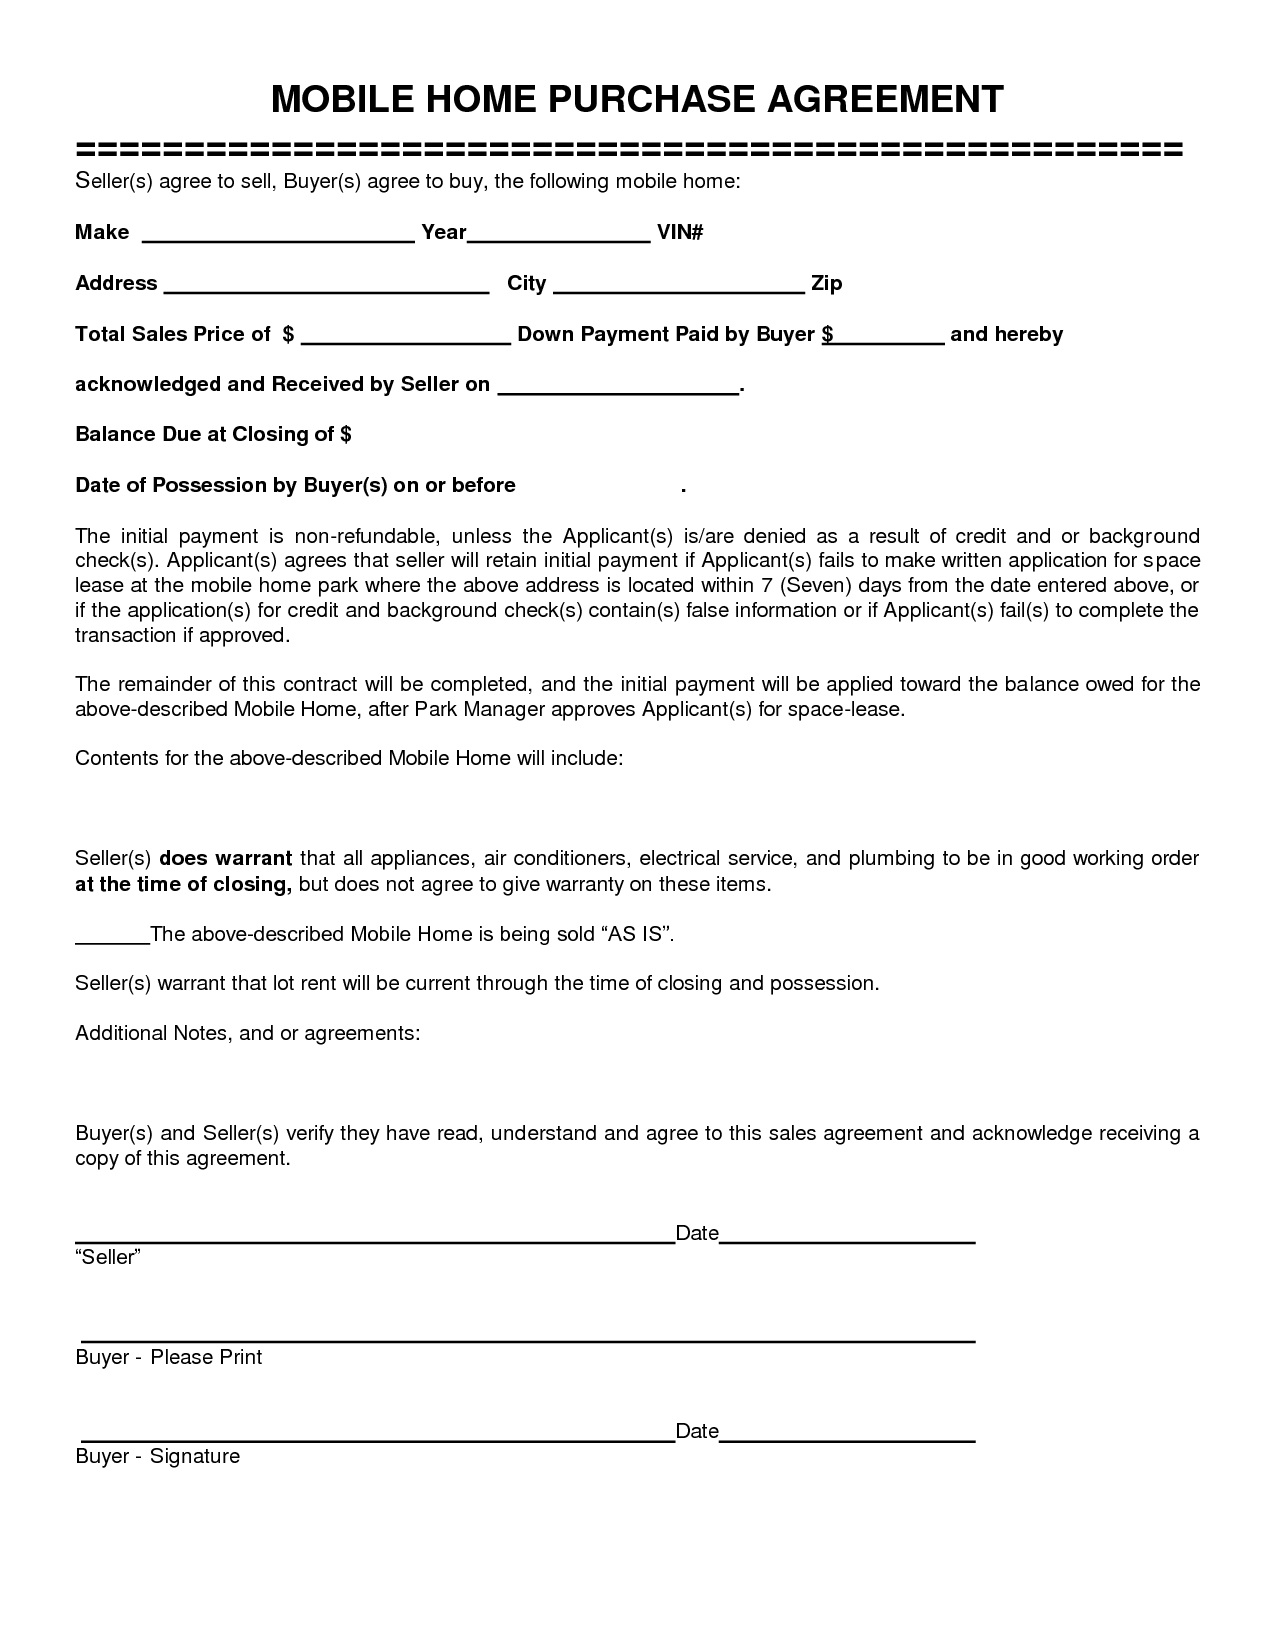 free mobile home purchase agreement to print Yahoo